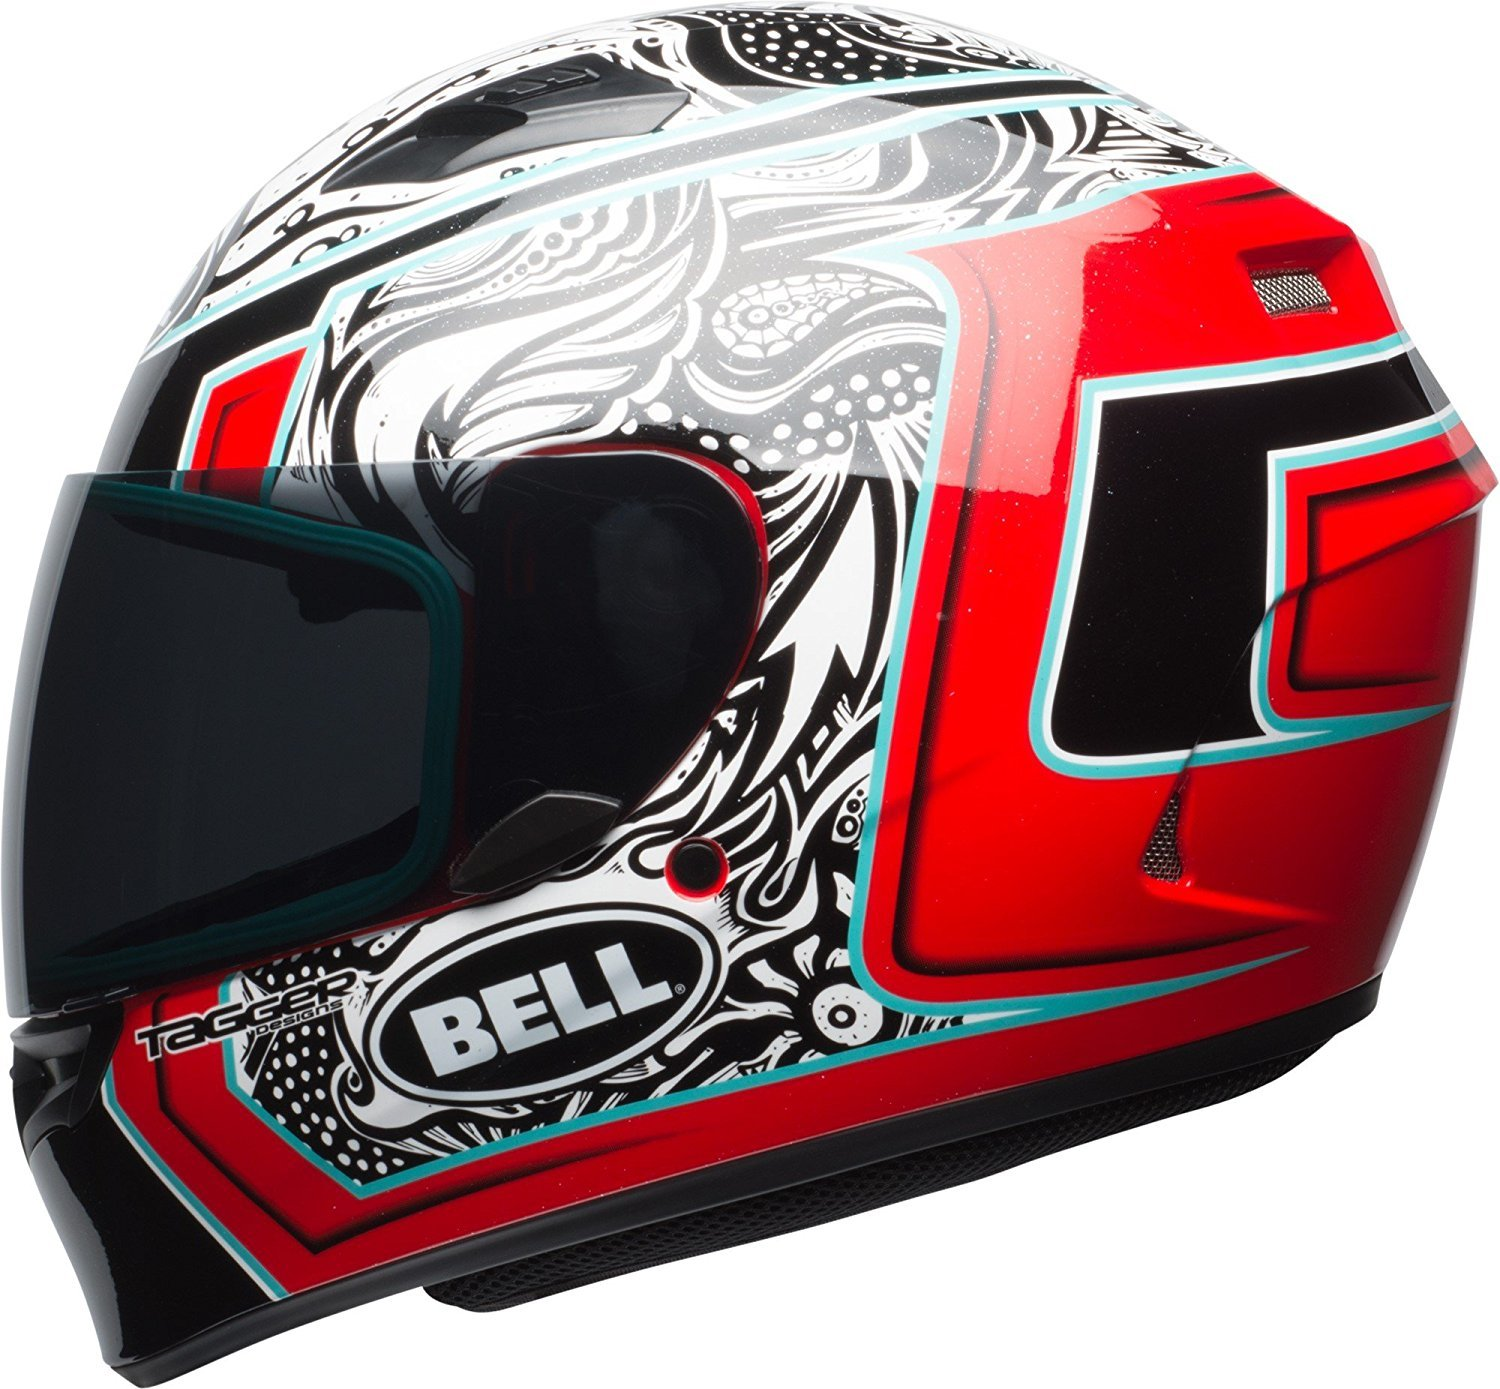 Bell Qualifier Full-Face Motorcycle Helmet Solid Matte Black, XX-Large